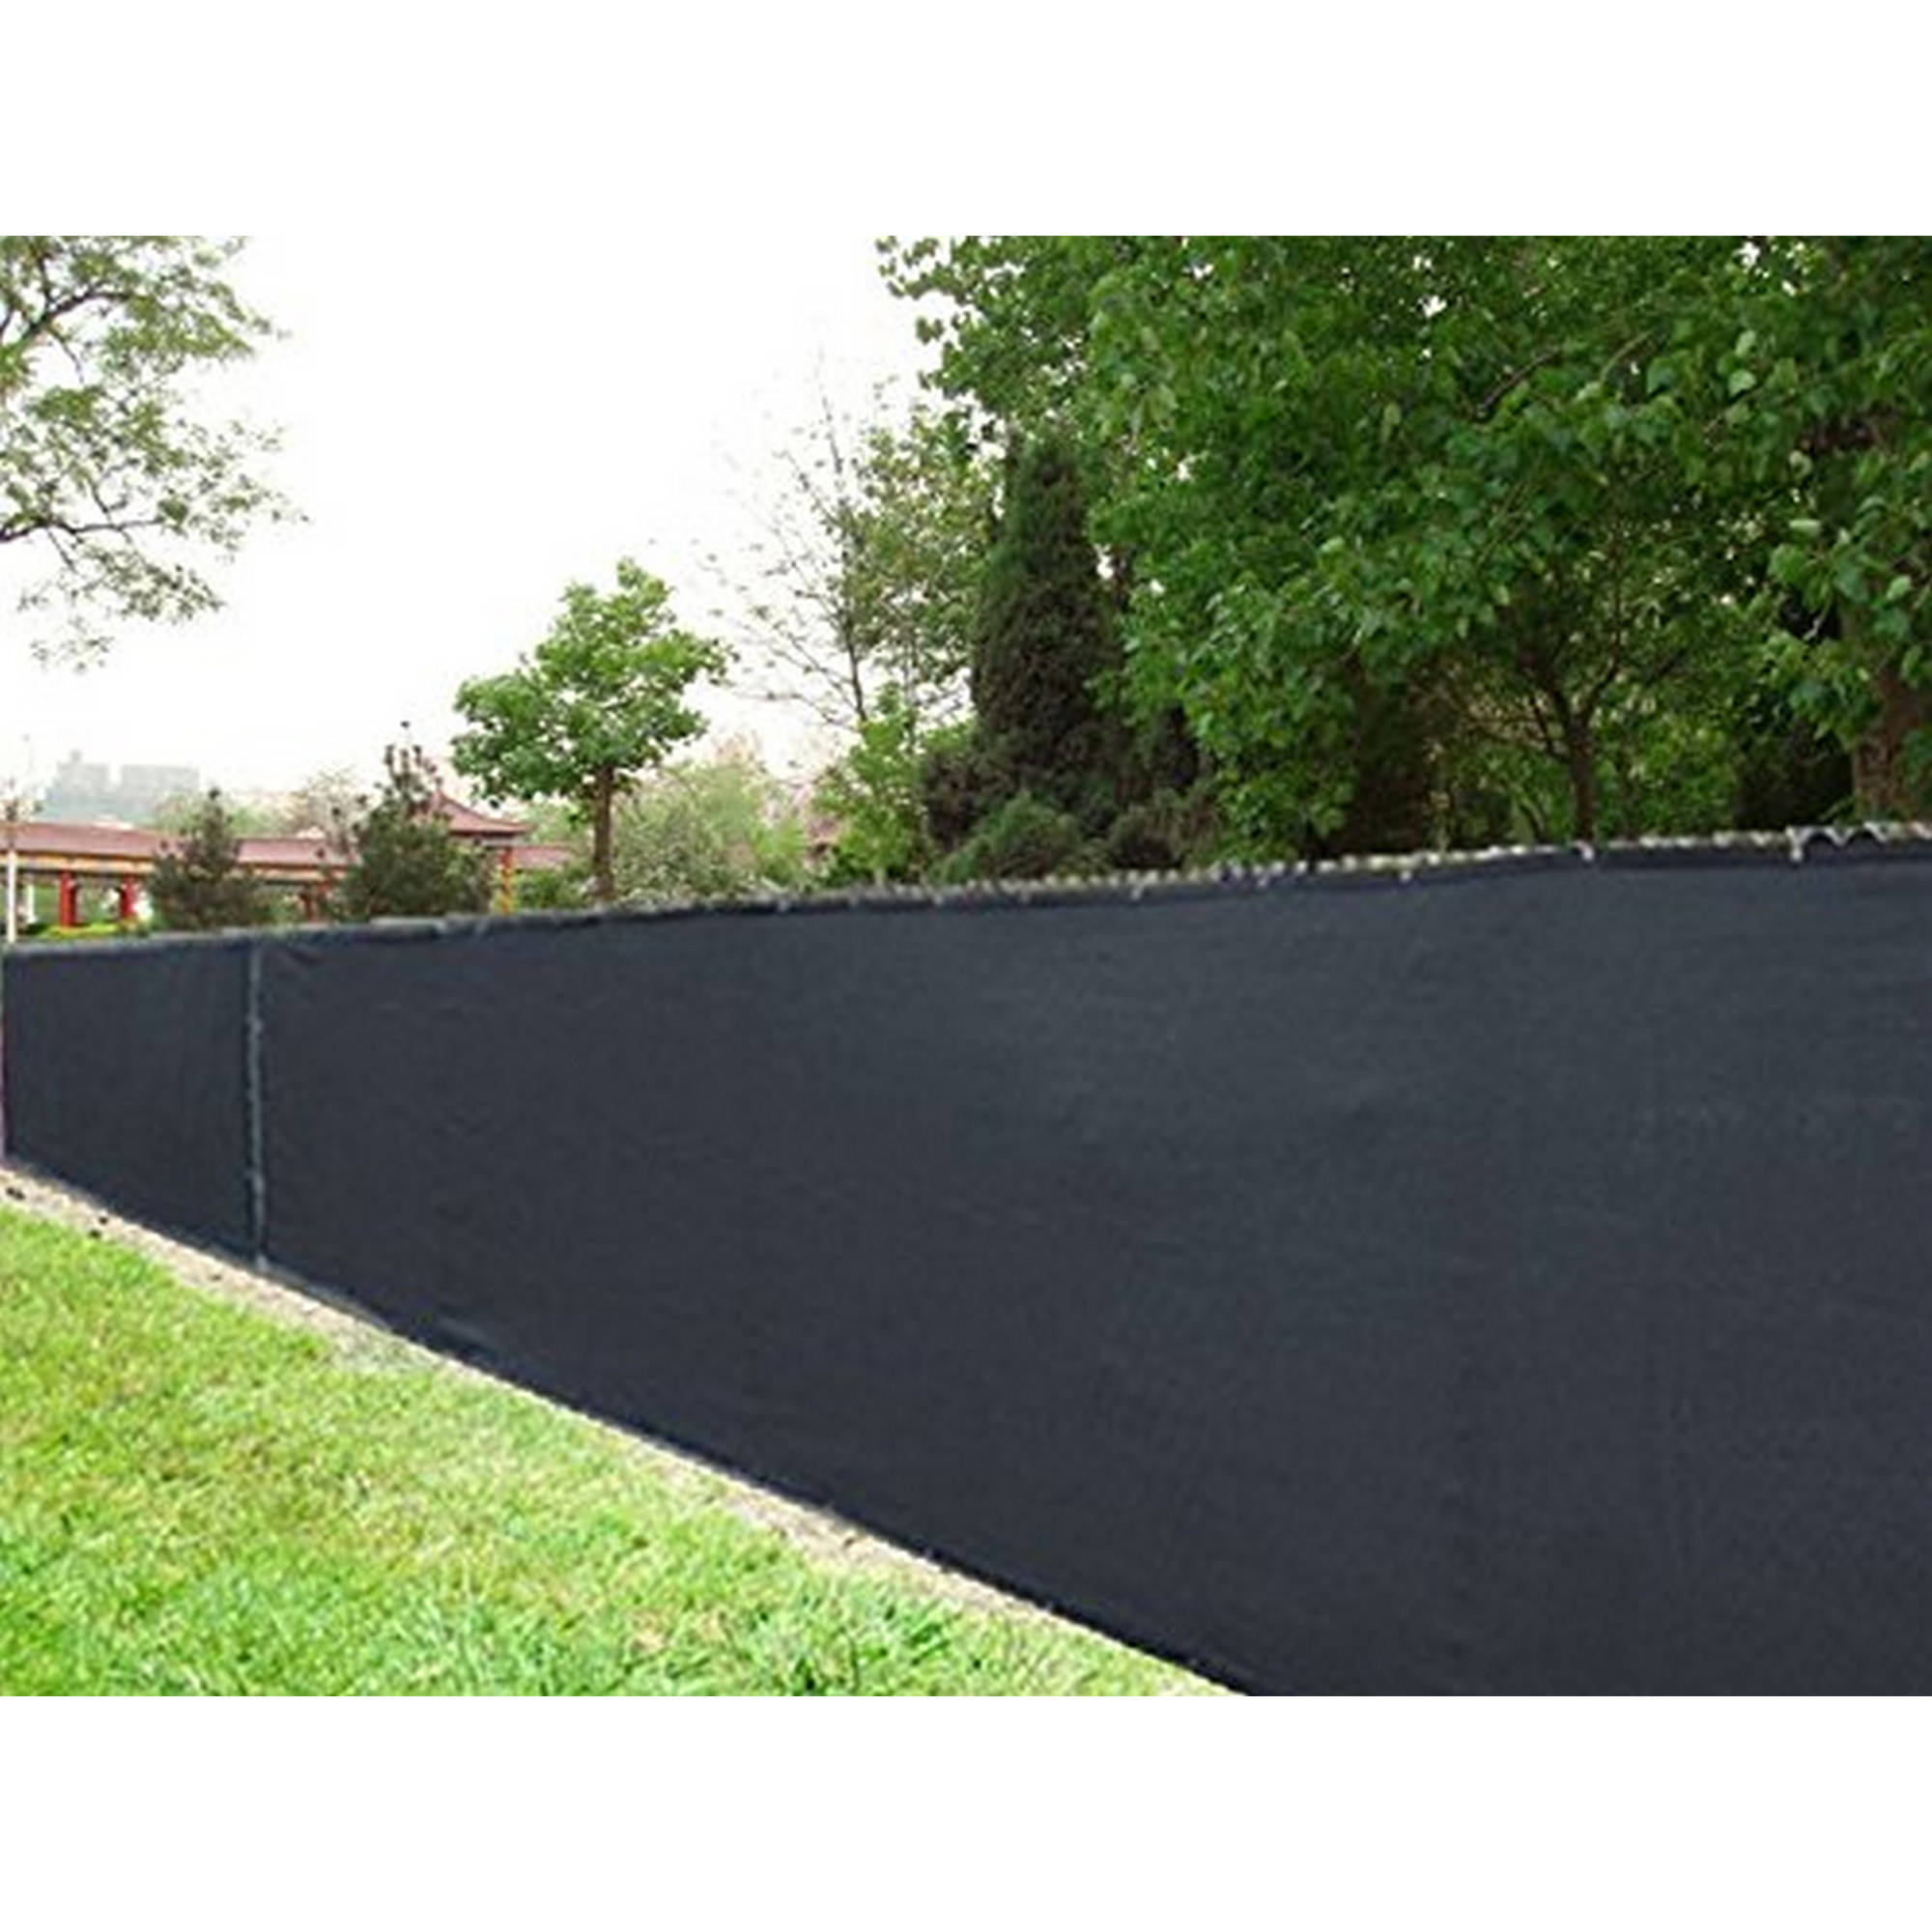 Aleko 6 X 25 Black Fence Privacy Screen Outdoor Backyard